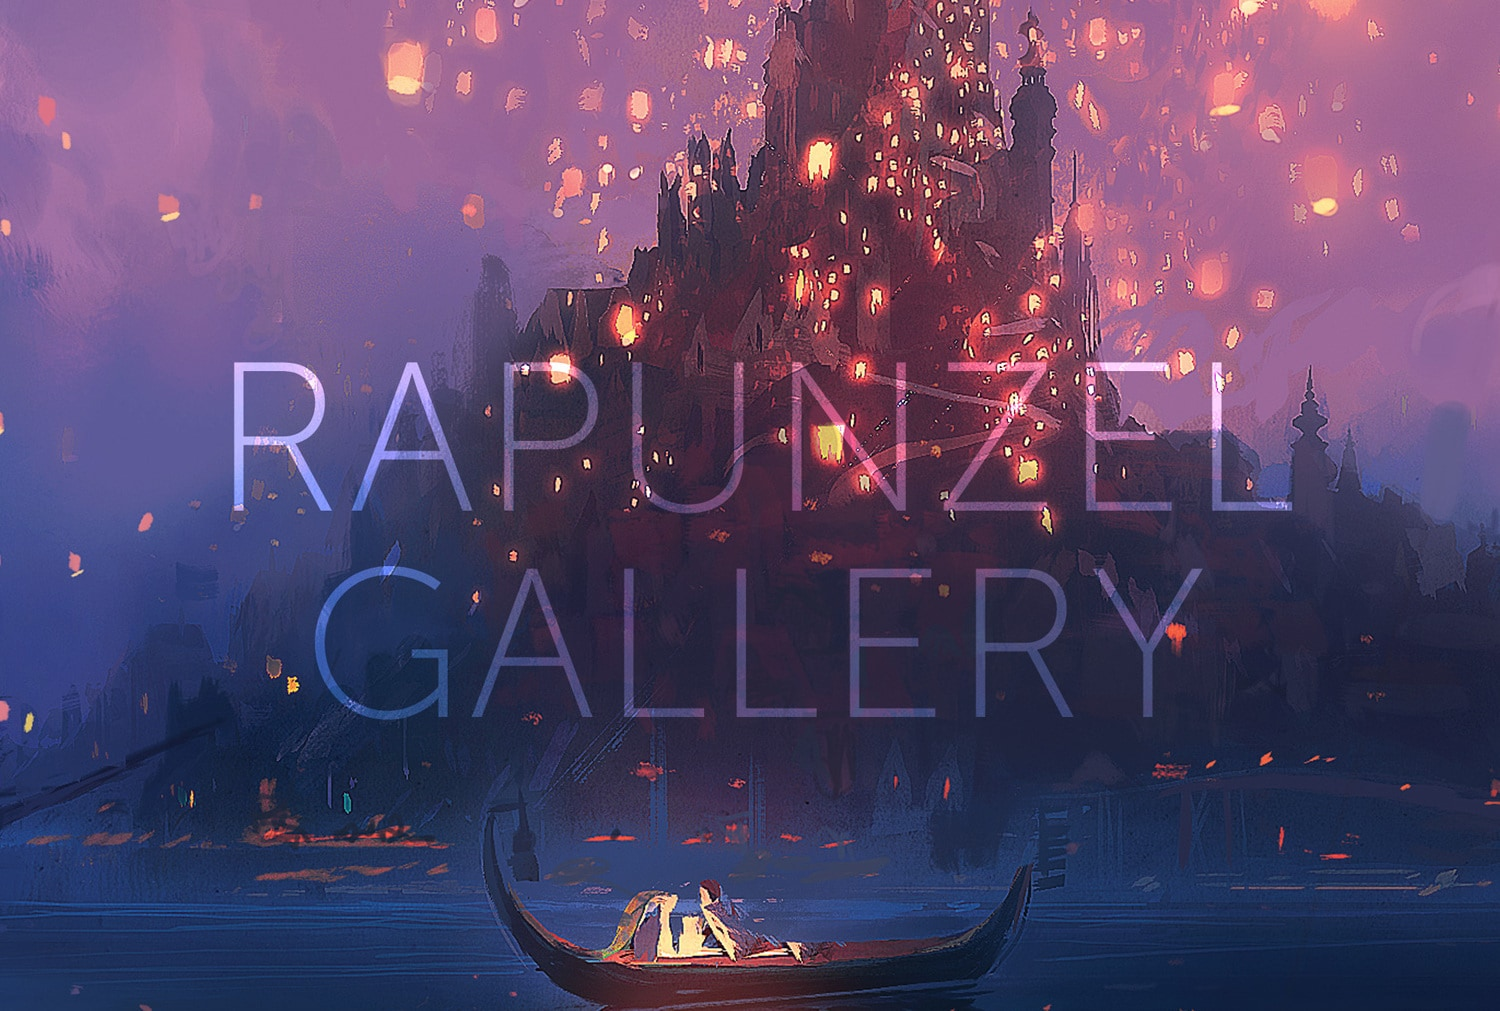 Rapunzel Photo Gallery